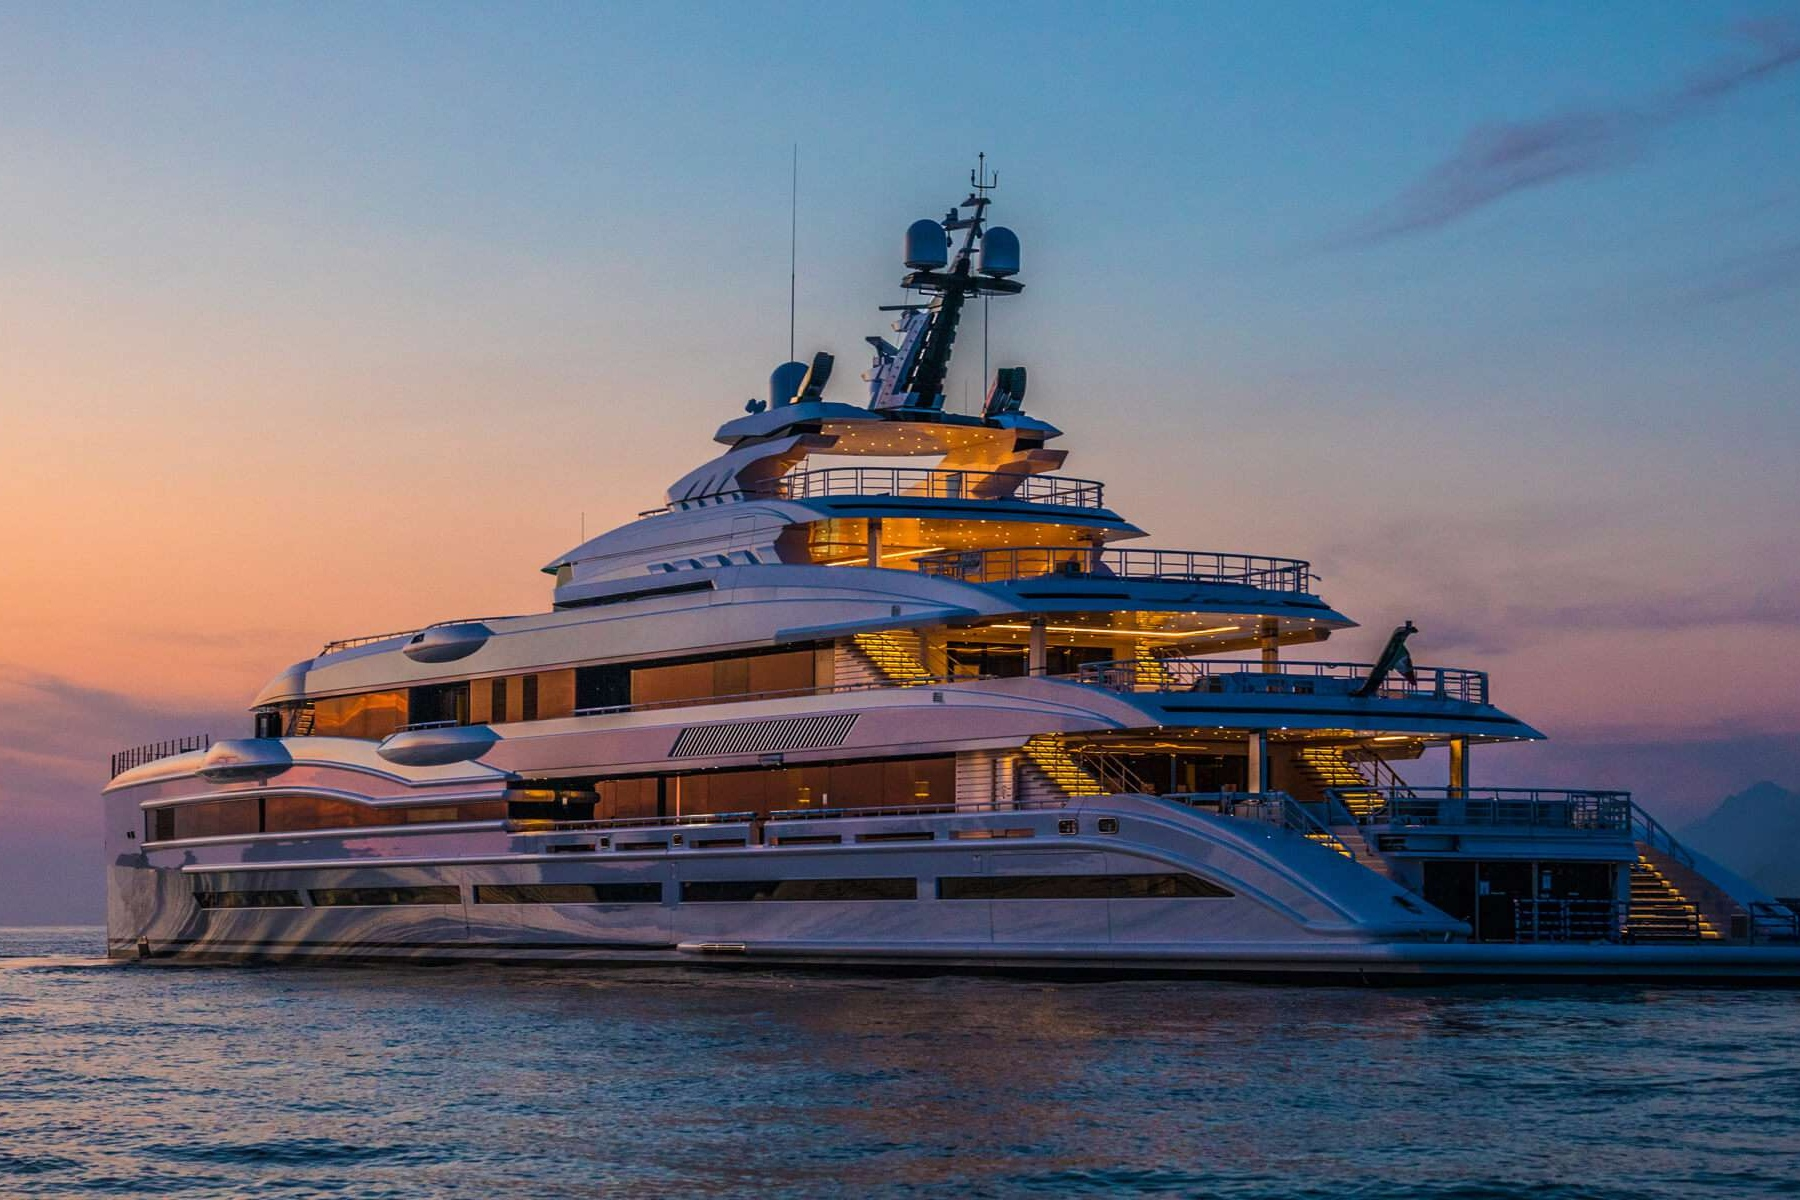 Future of luxury yachting: Top 25 cutting-edge boat brands ()